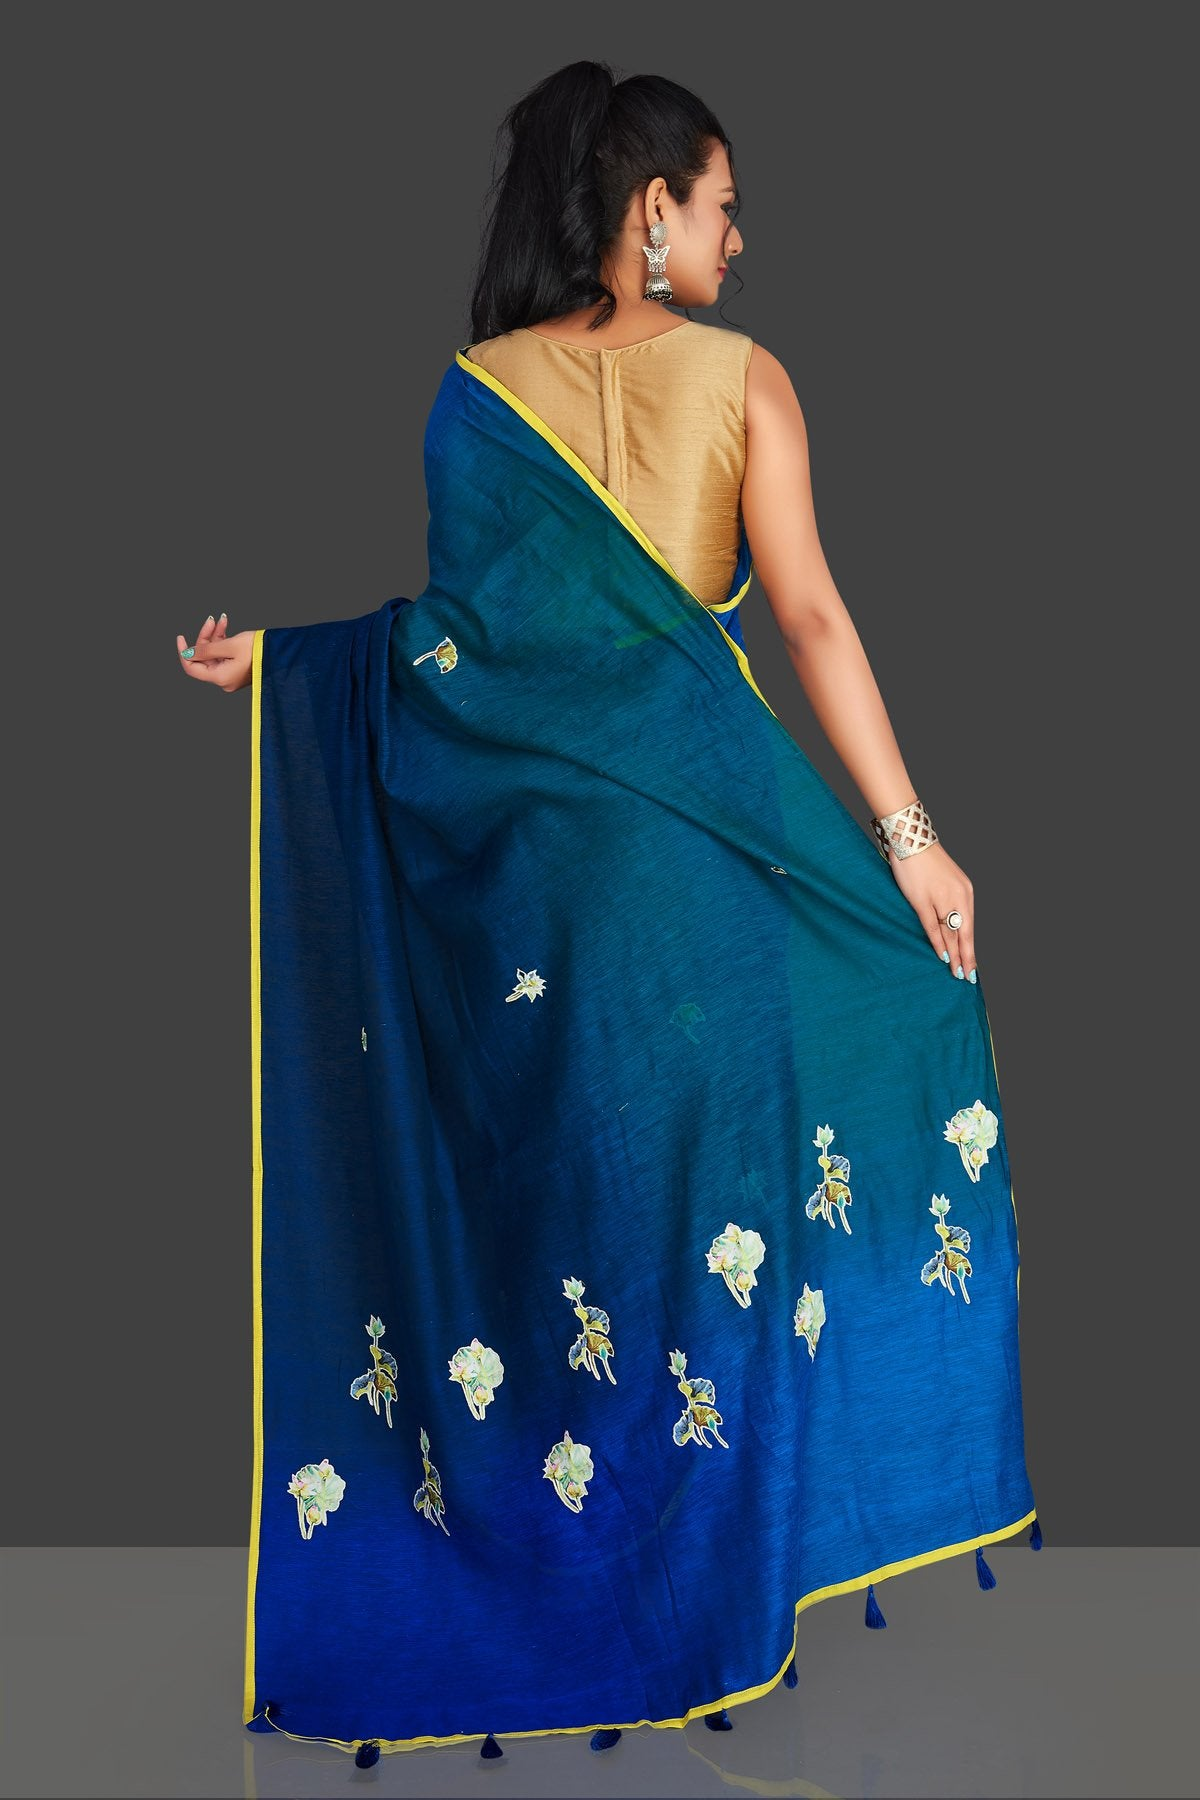 Shop blue and green applique work linen saree online in USA with white floral saree blouse. Radiate elegance with designer sarees with blouse, linen sarees from Pure Elegance Indian fashion boutique in USA. We bring a especially curated collection of ethnic saris for Indian women in USA under one roof!-back